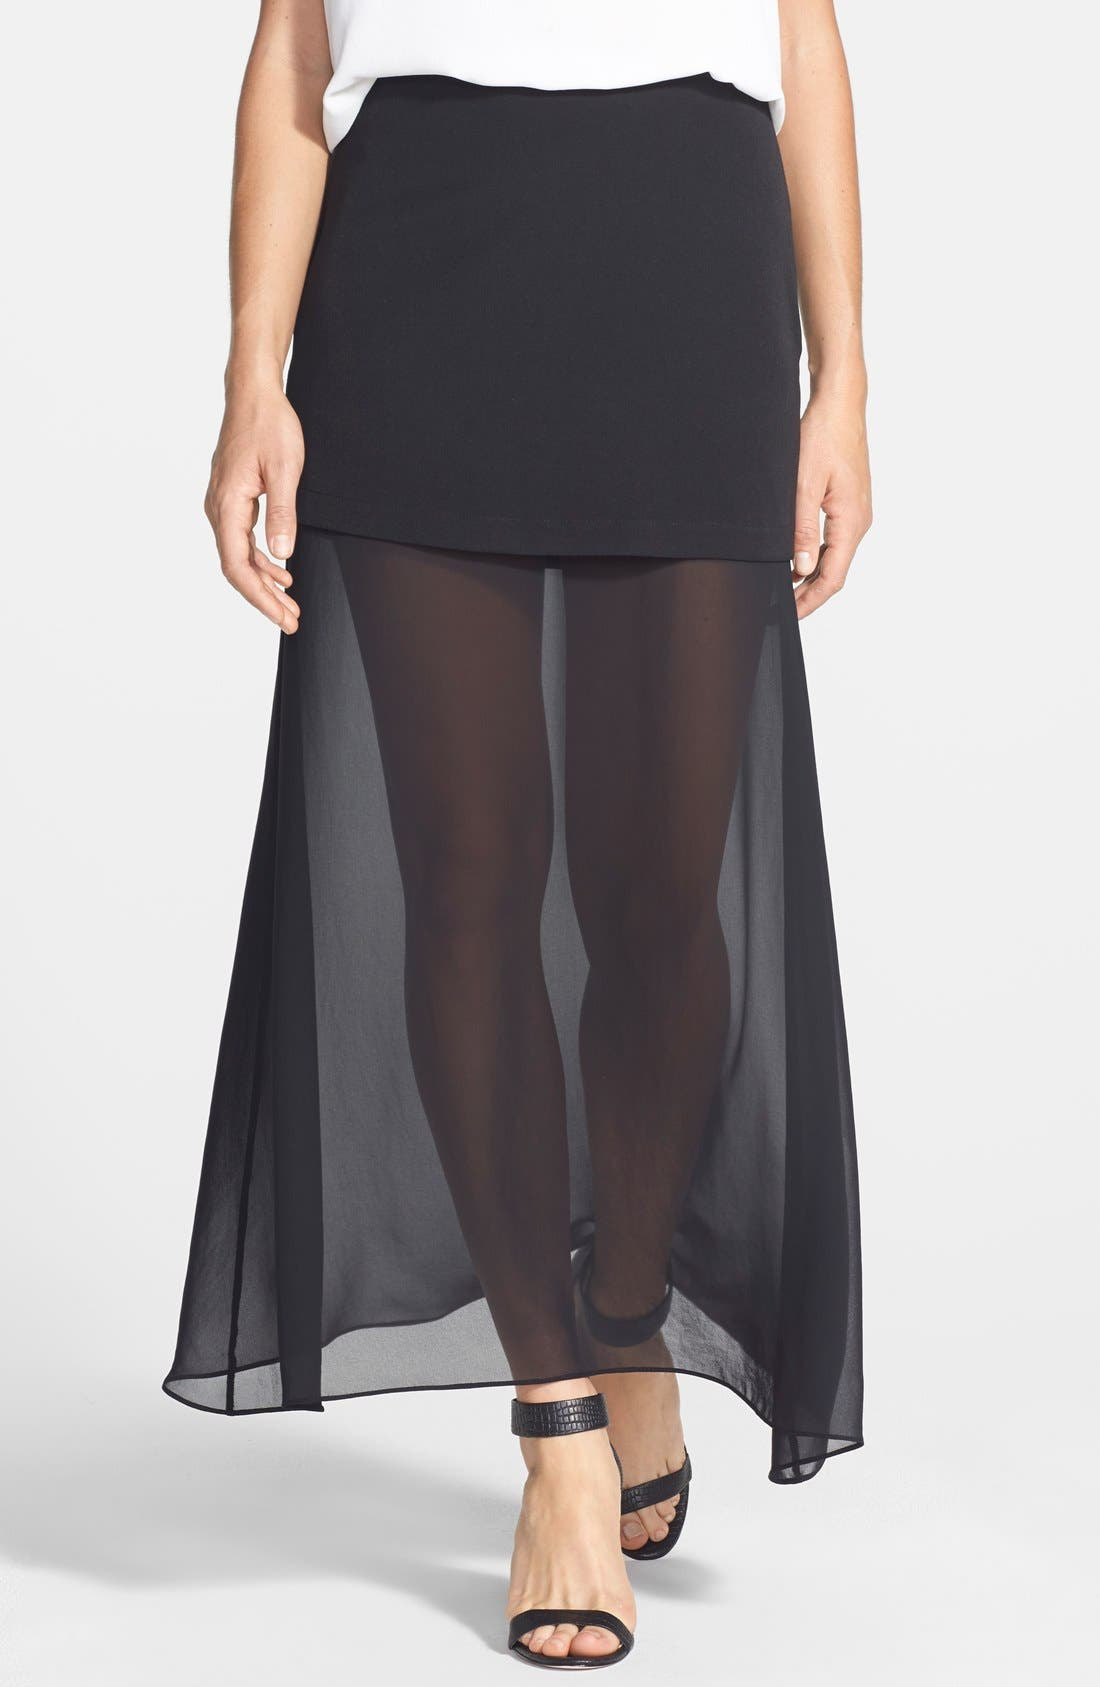 NIKKI RICH, 'Hematite' Chiffon Underlayer Skirt, Main thumbnail 1, color, 001